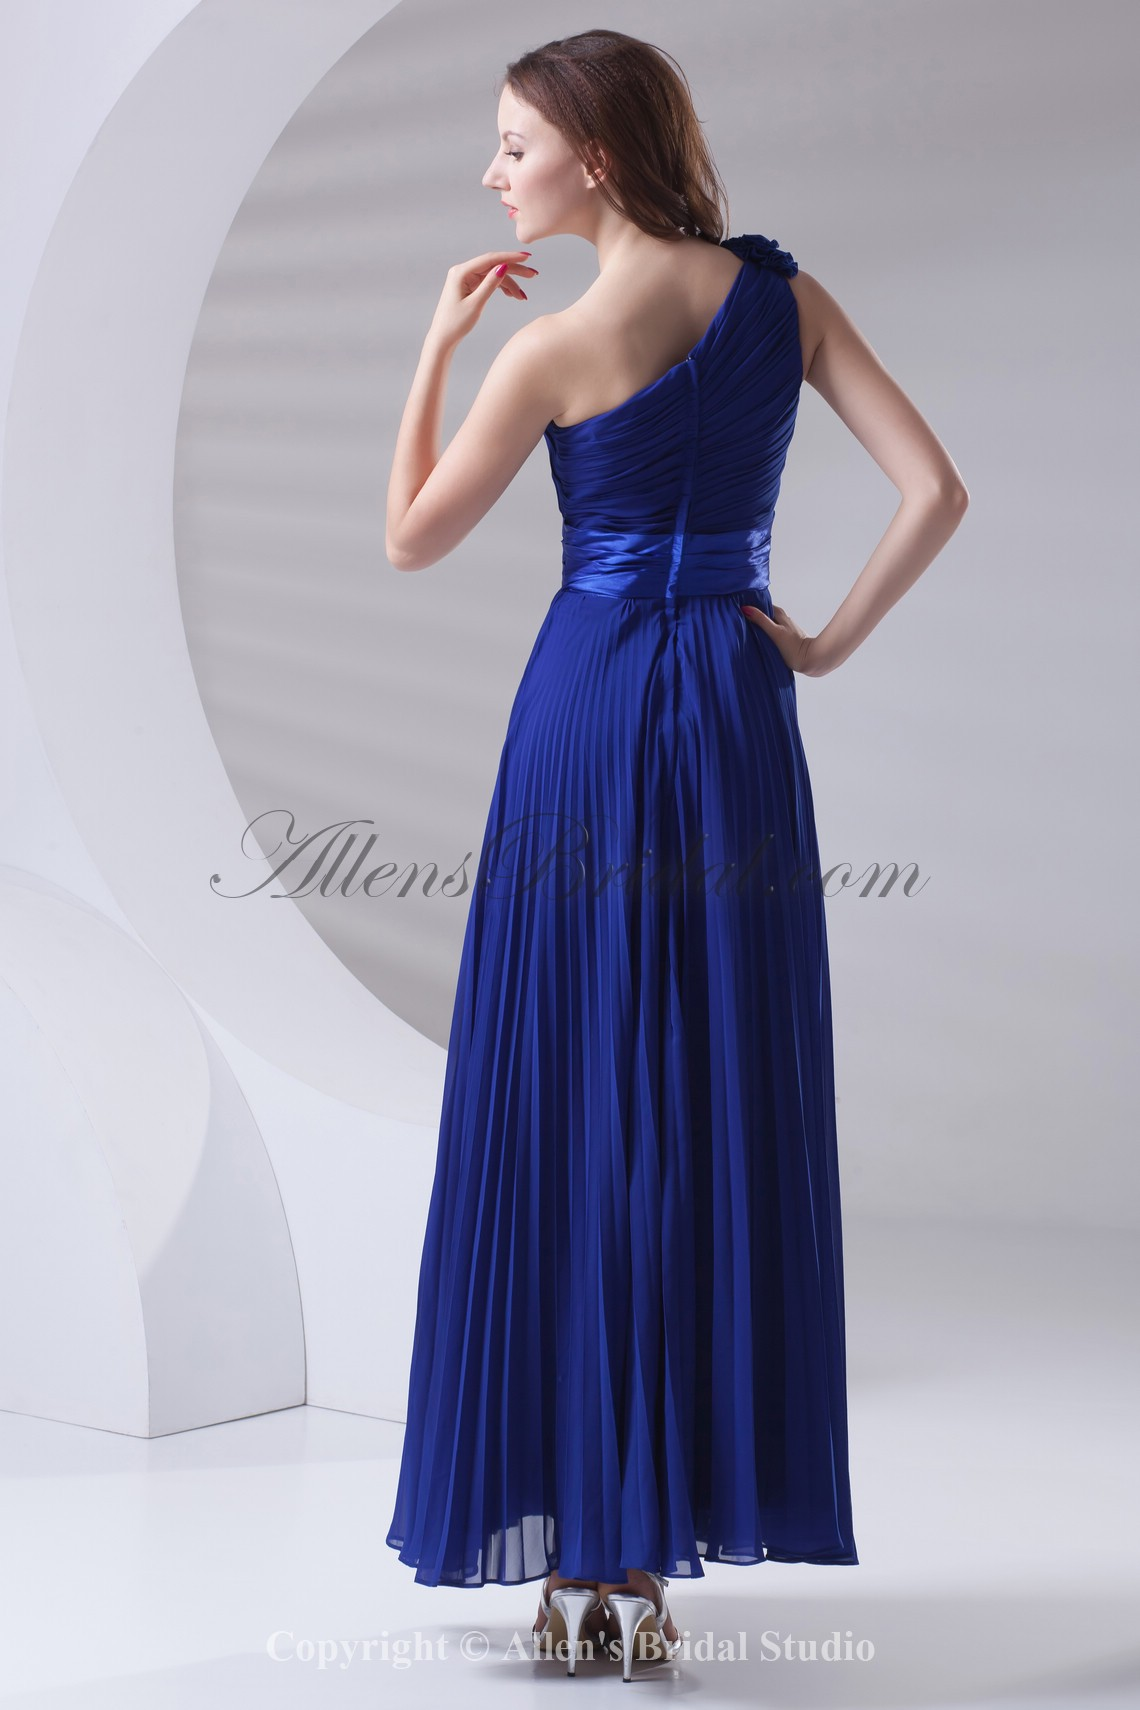 /421-3371/chiffon-asymmetrical-neckline-column-ankle-length-flowers-prom-dress.jpg